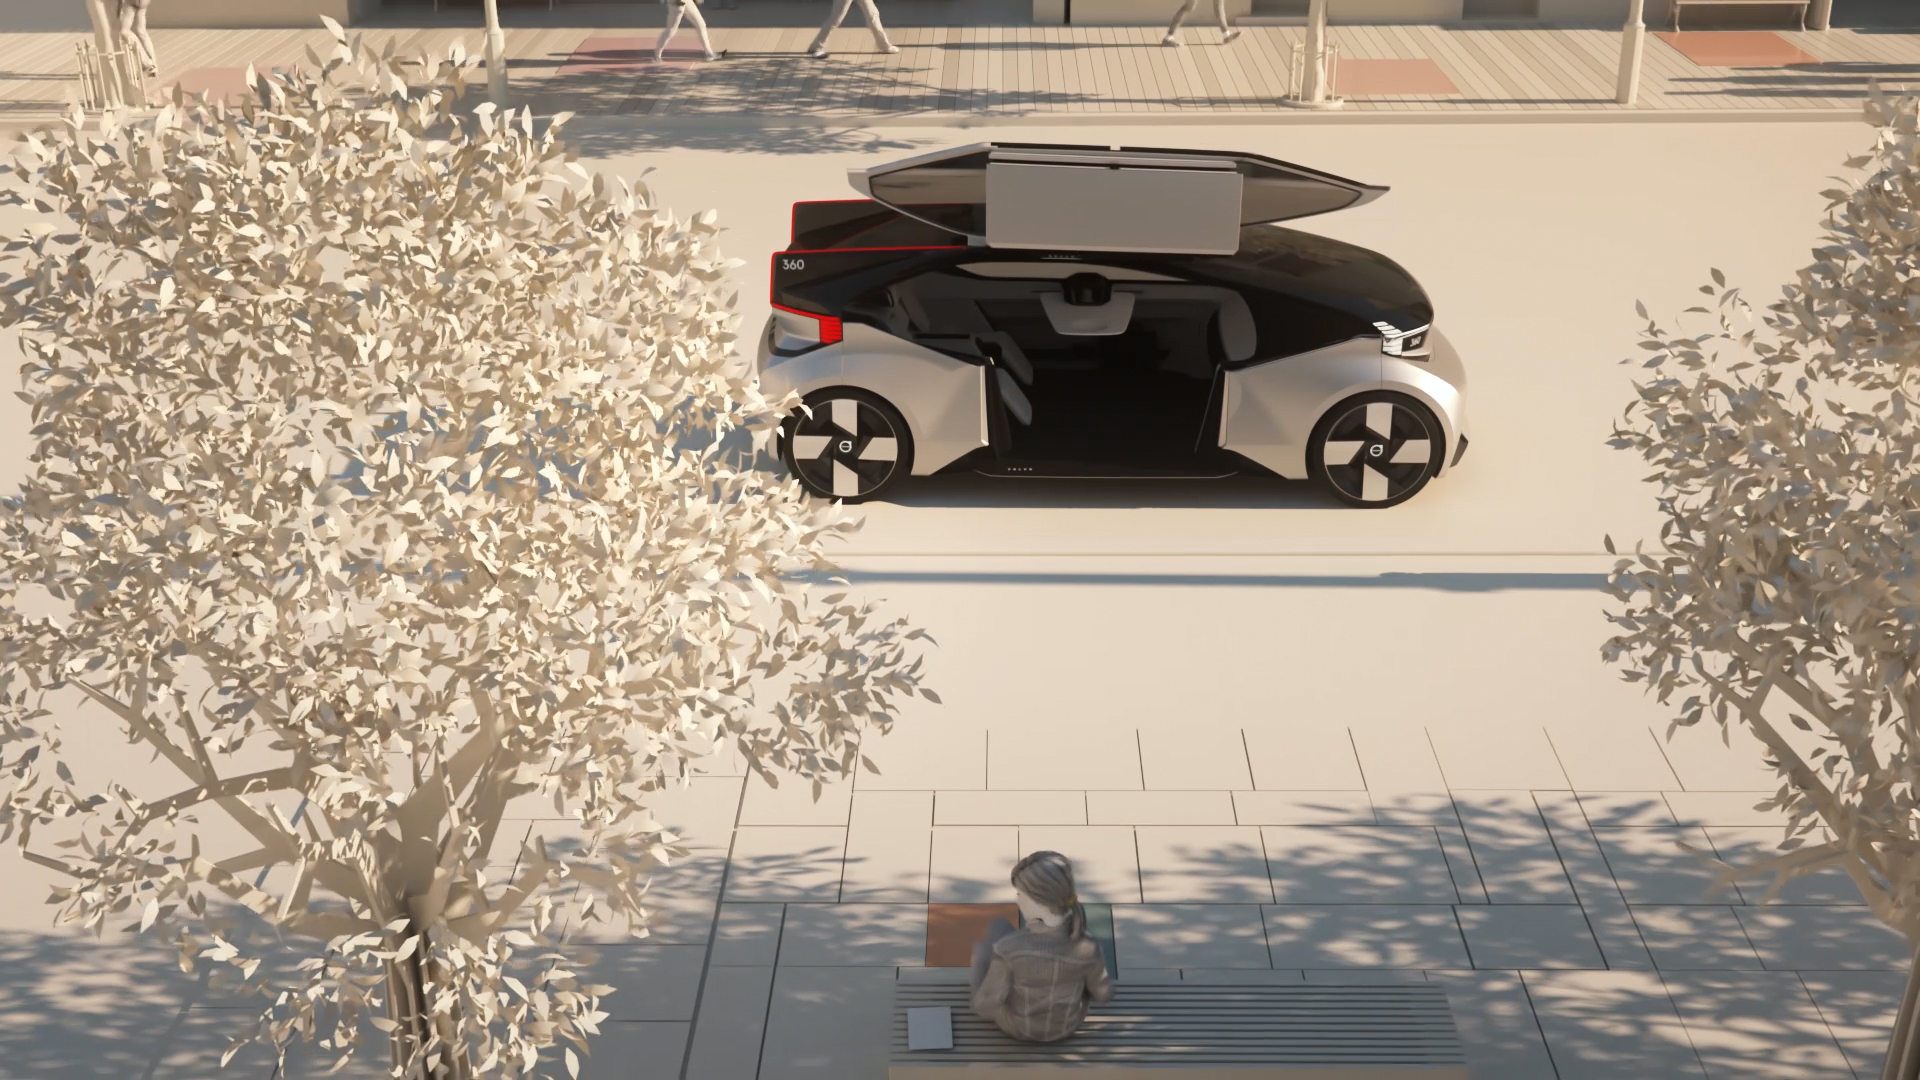 Animation Volvo Cars 360c